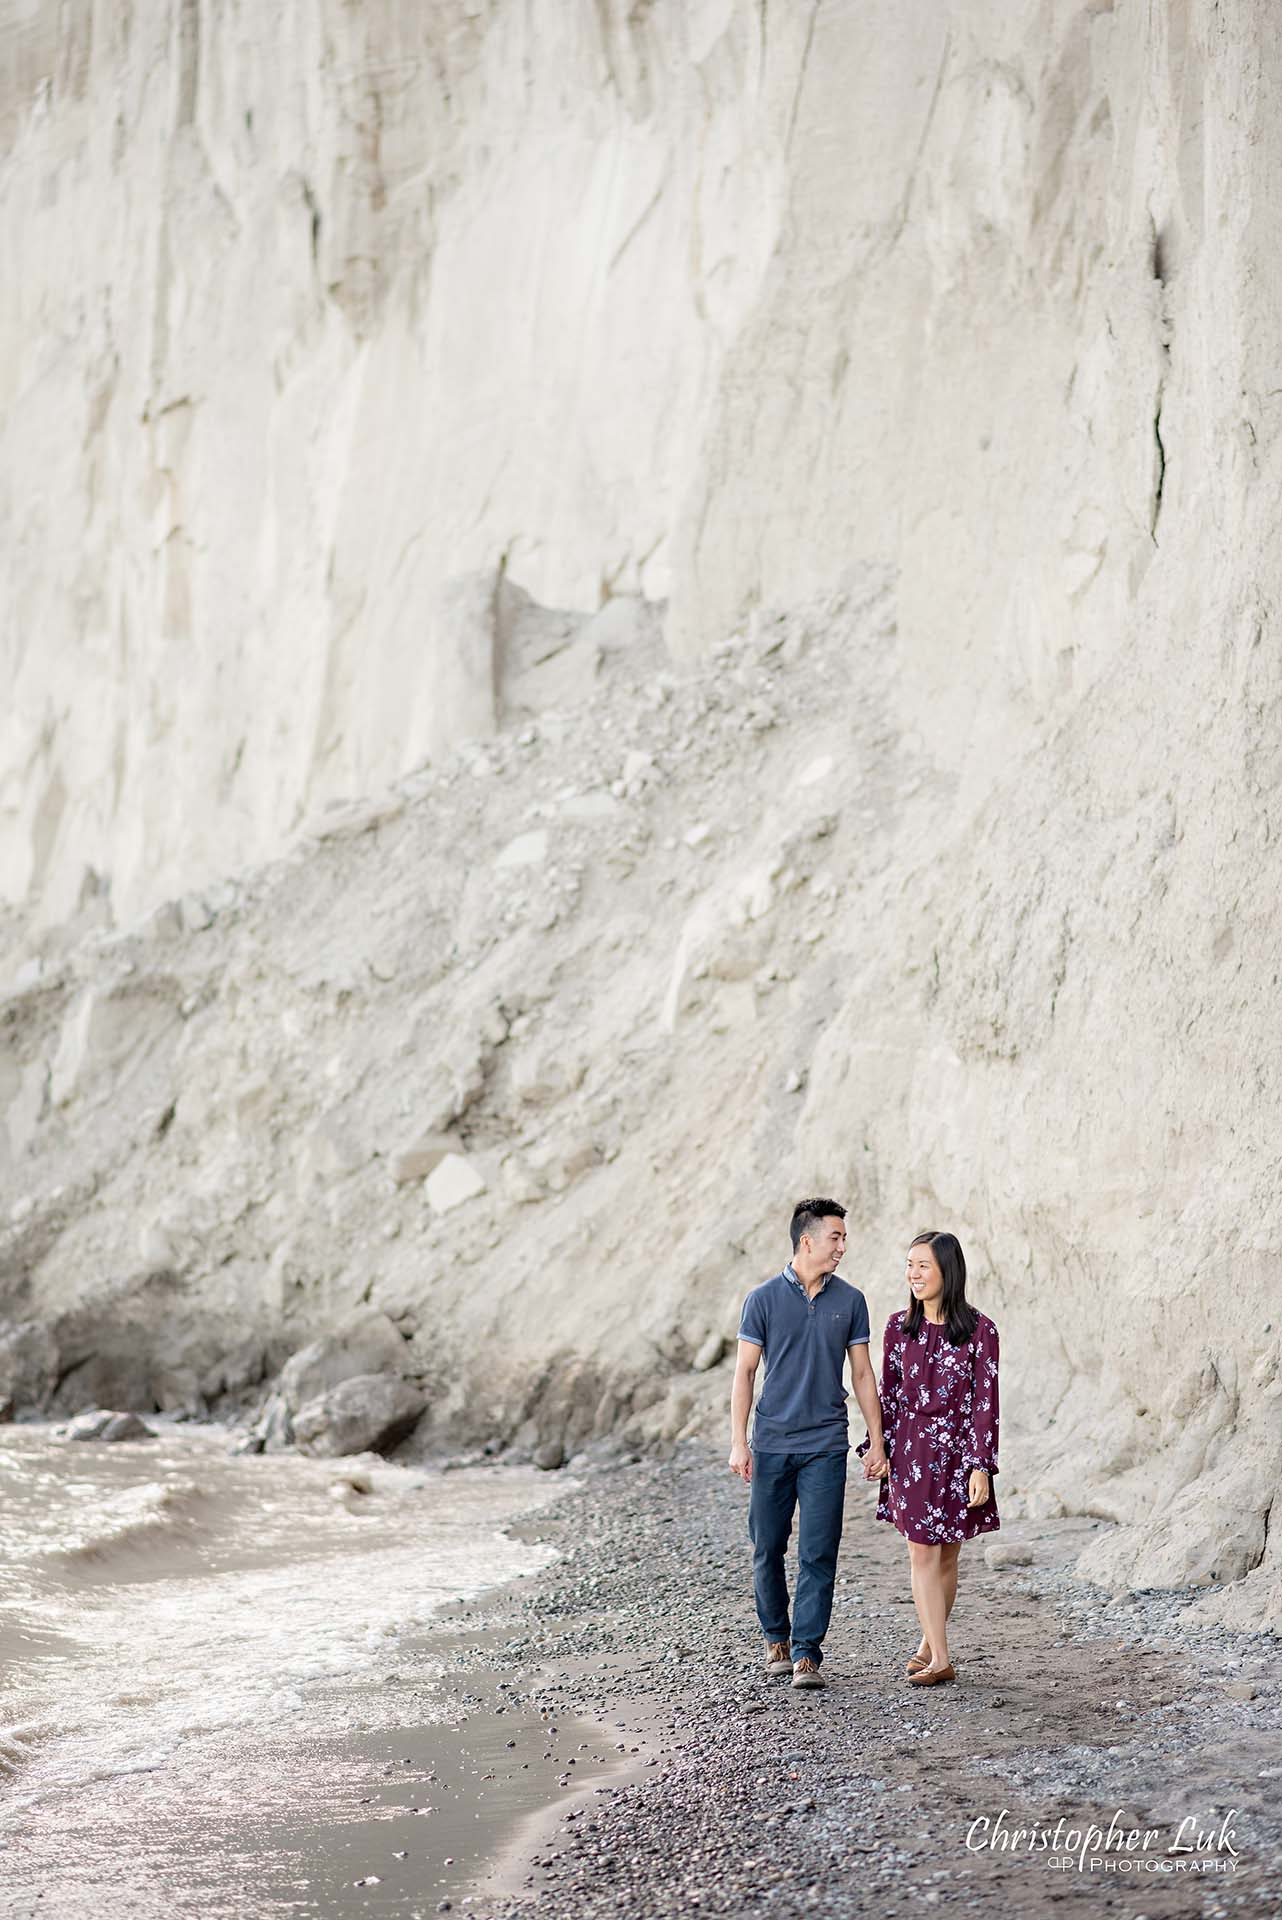 Christopher Luk Toronto Photographer Scarborough Bluffs Beach Park Sunset Surprise Wedding Marriage Engagement Proposal Candid Natural Photojournalistic Bride Groom Waterfront Water Lake Ontario Background Beachfront Sand Walking Together Holding Hands Edge of Water Smile Stone Portrait